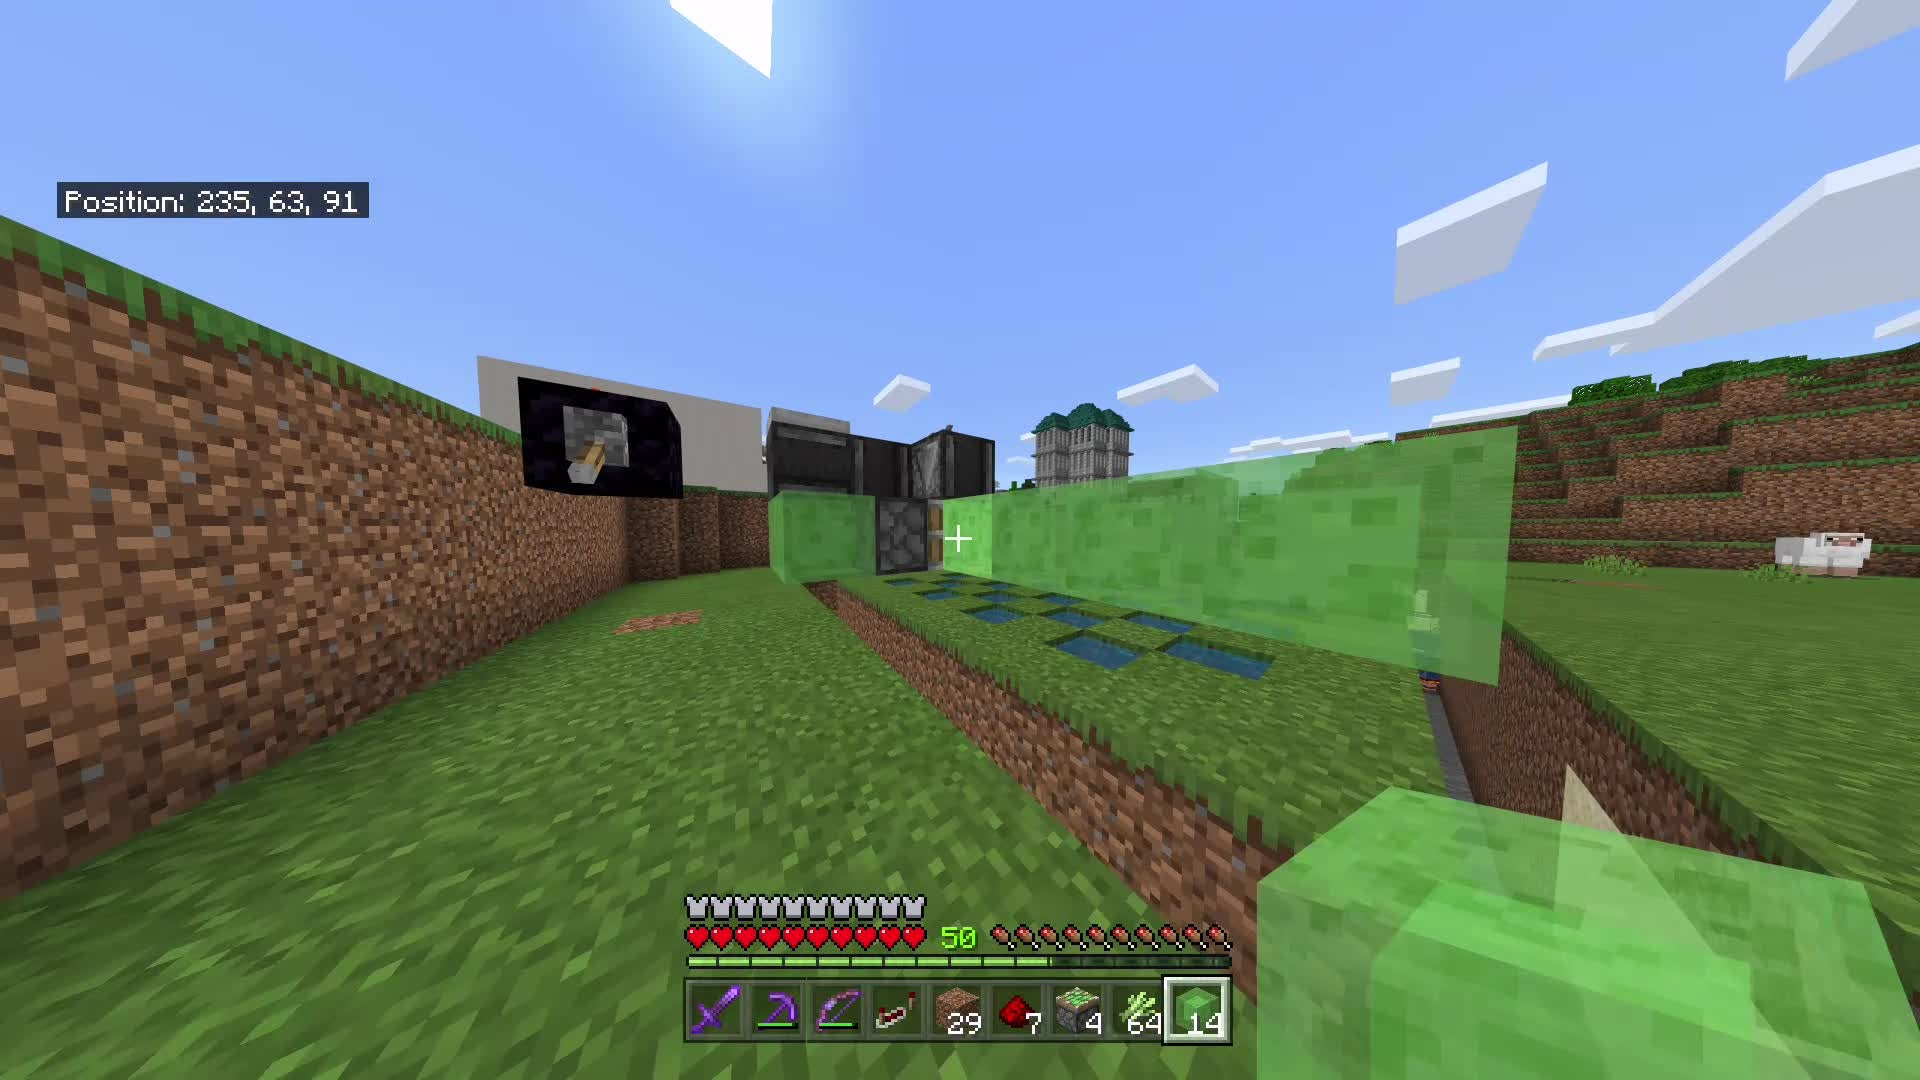 Minecraft: Memes - Me failing to make a flying machine for industrial redstone sugar cane farm: video cover image 1